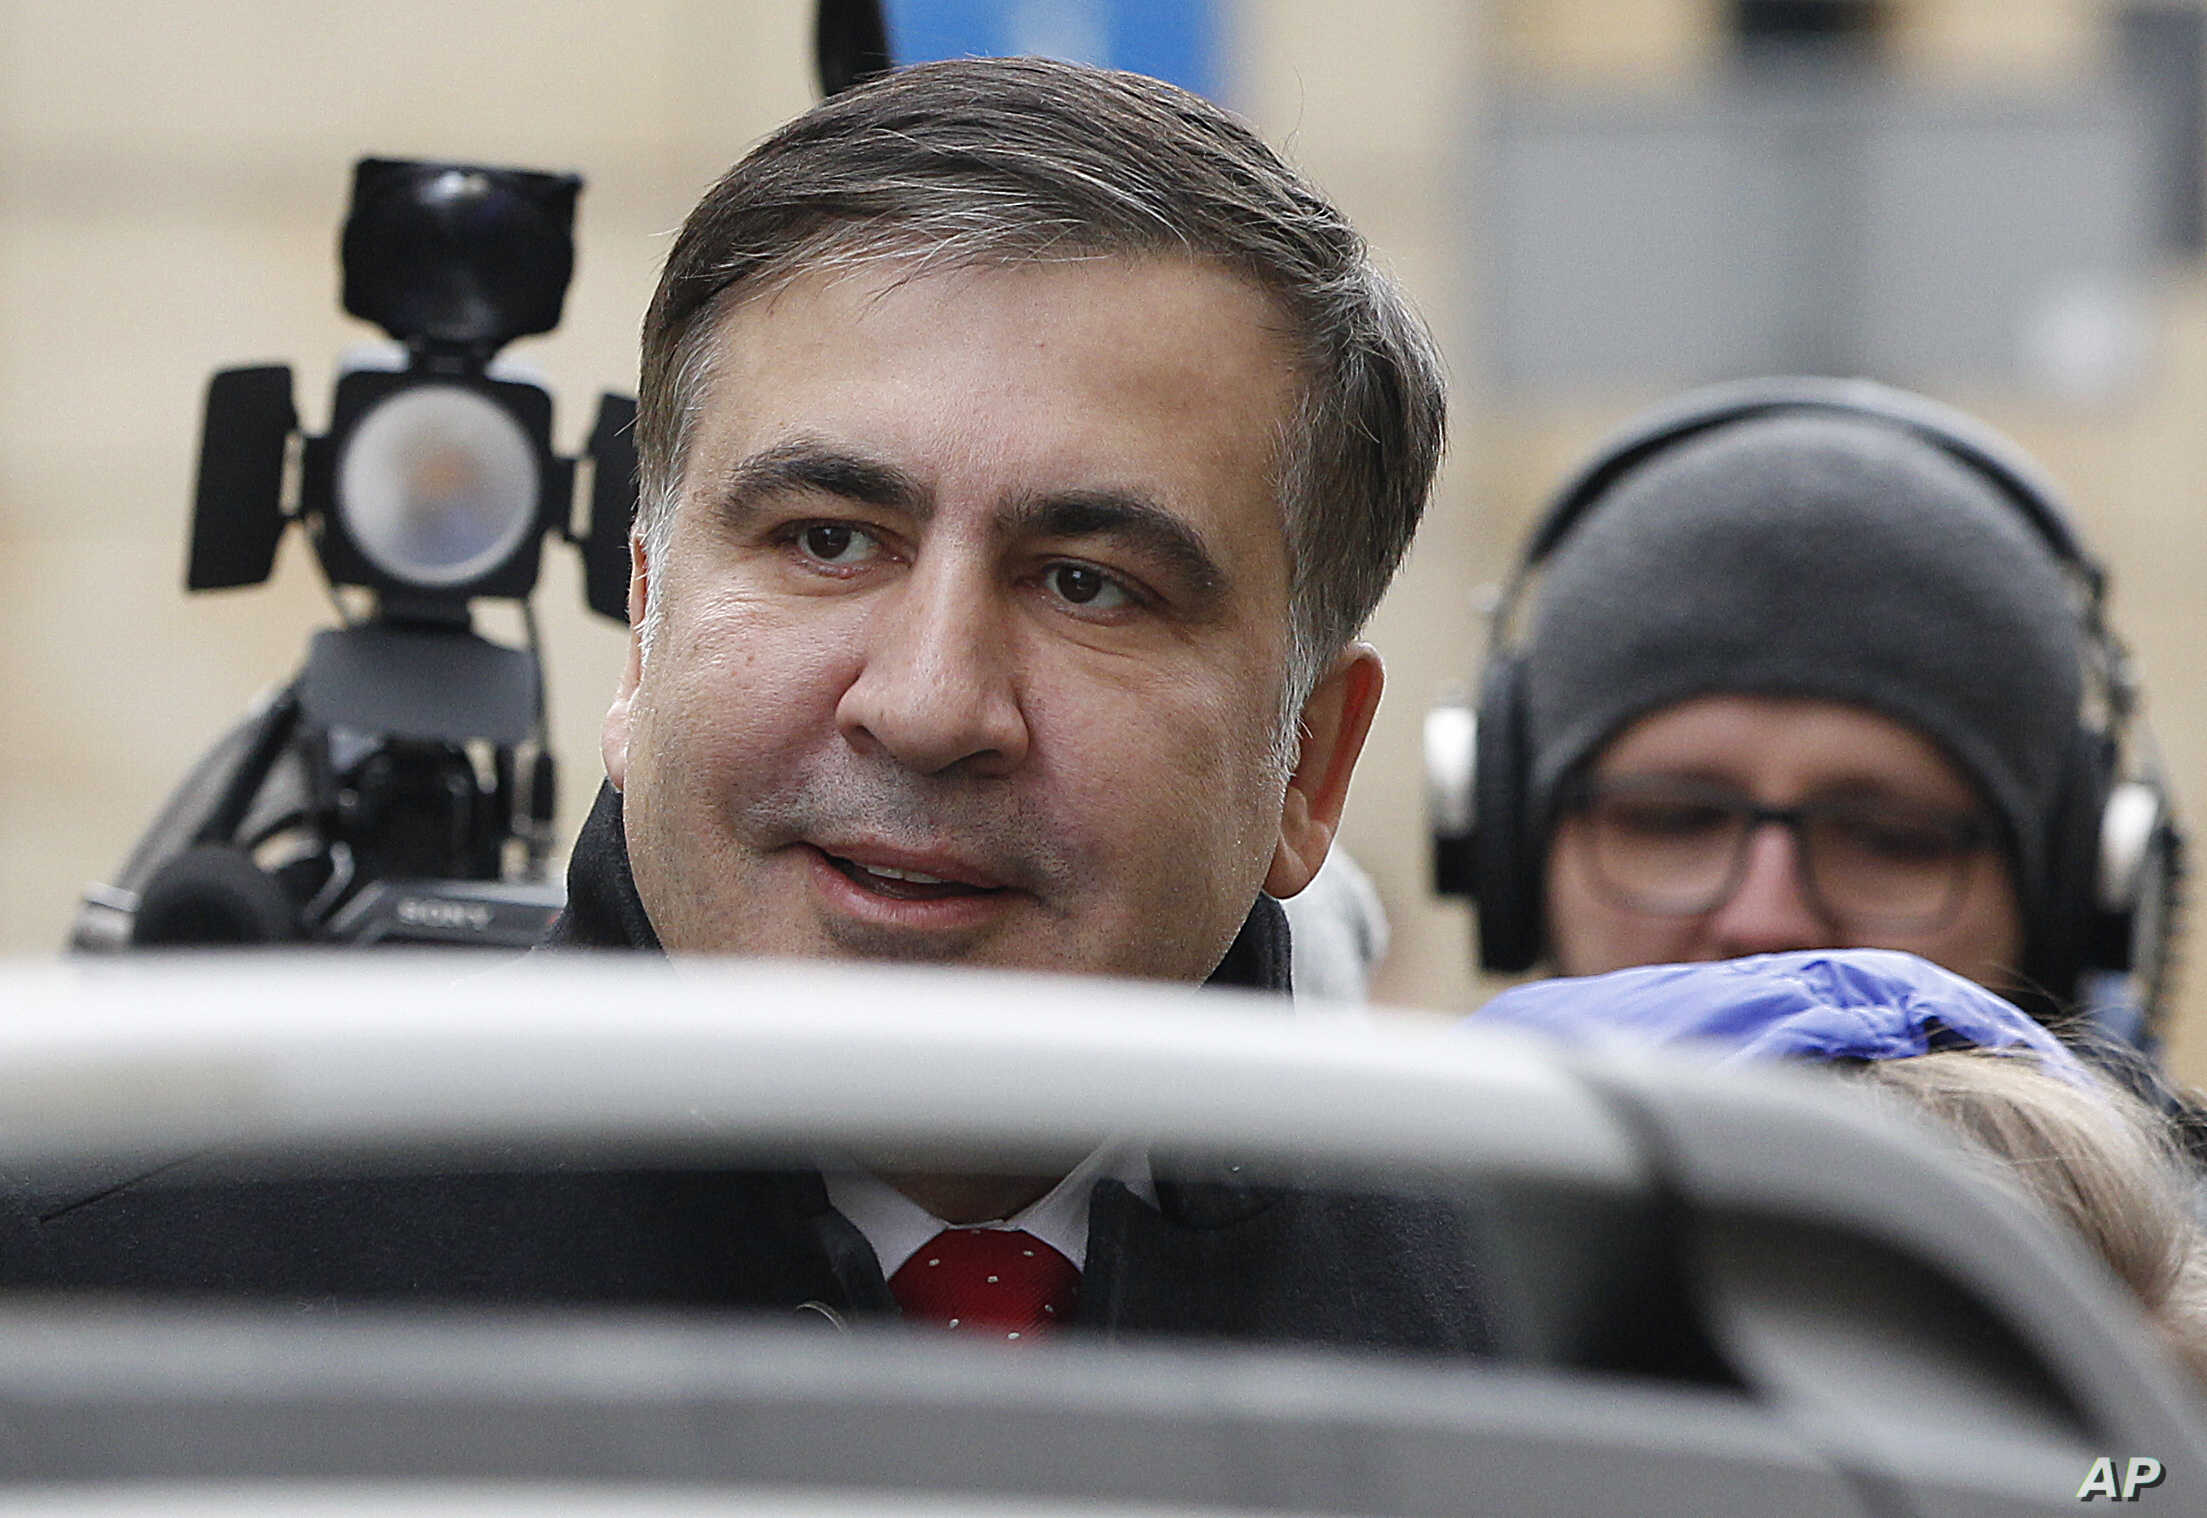 FILE - Mikheil Saakashvili, former president of Georgia and an opposition figure in Ukraine, arrives for a news conference in Warsaw, Poland, Feb. 13, 2018, after being deported from Ukraine.